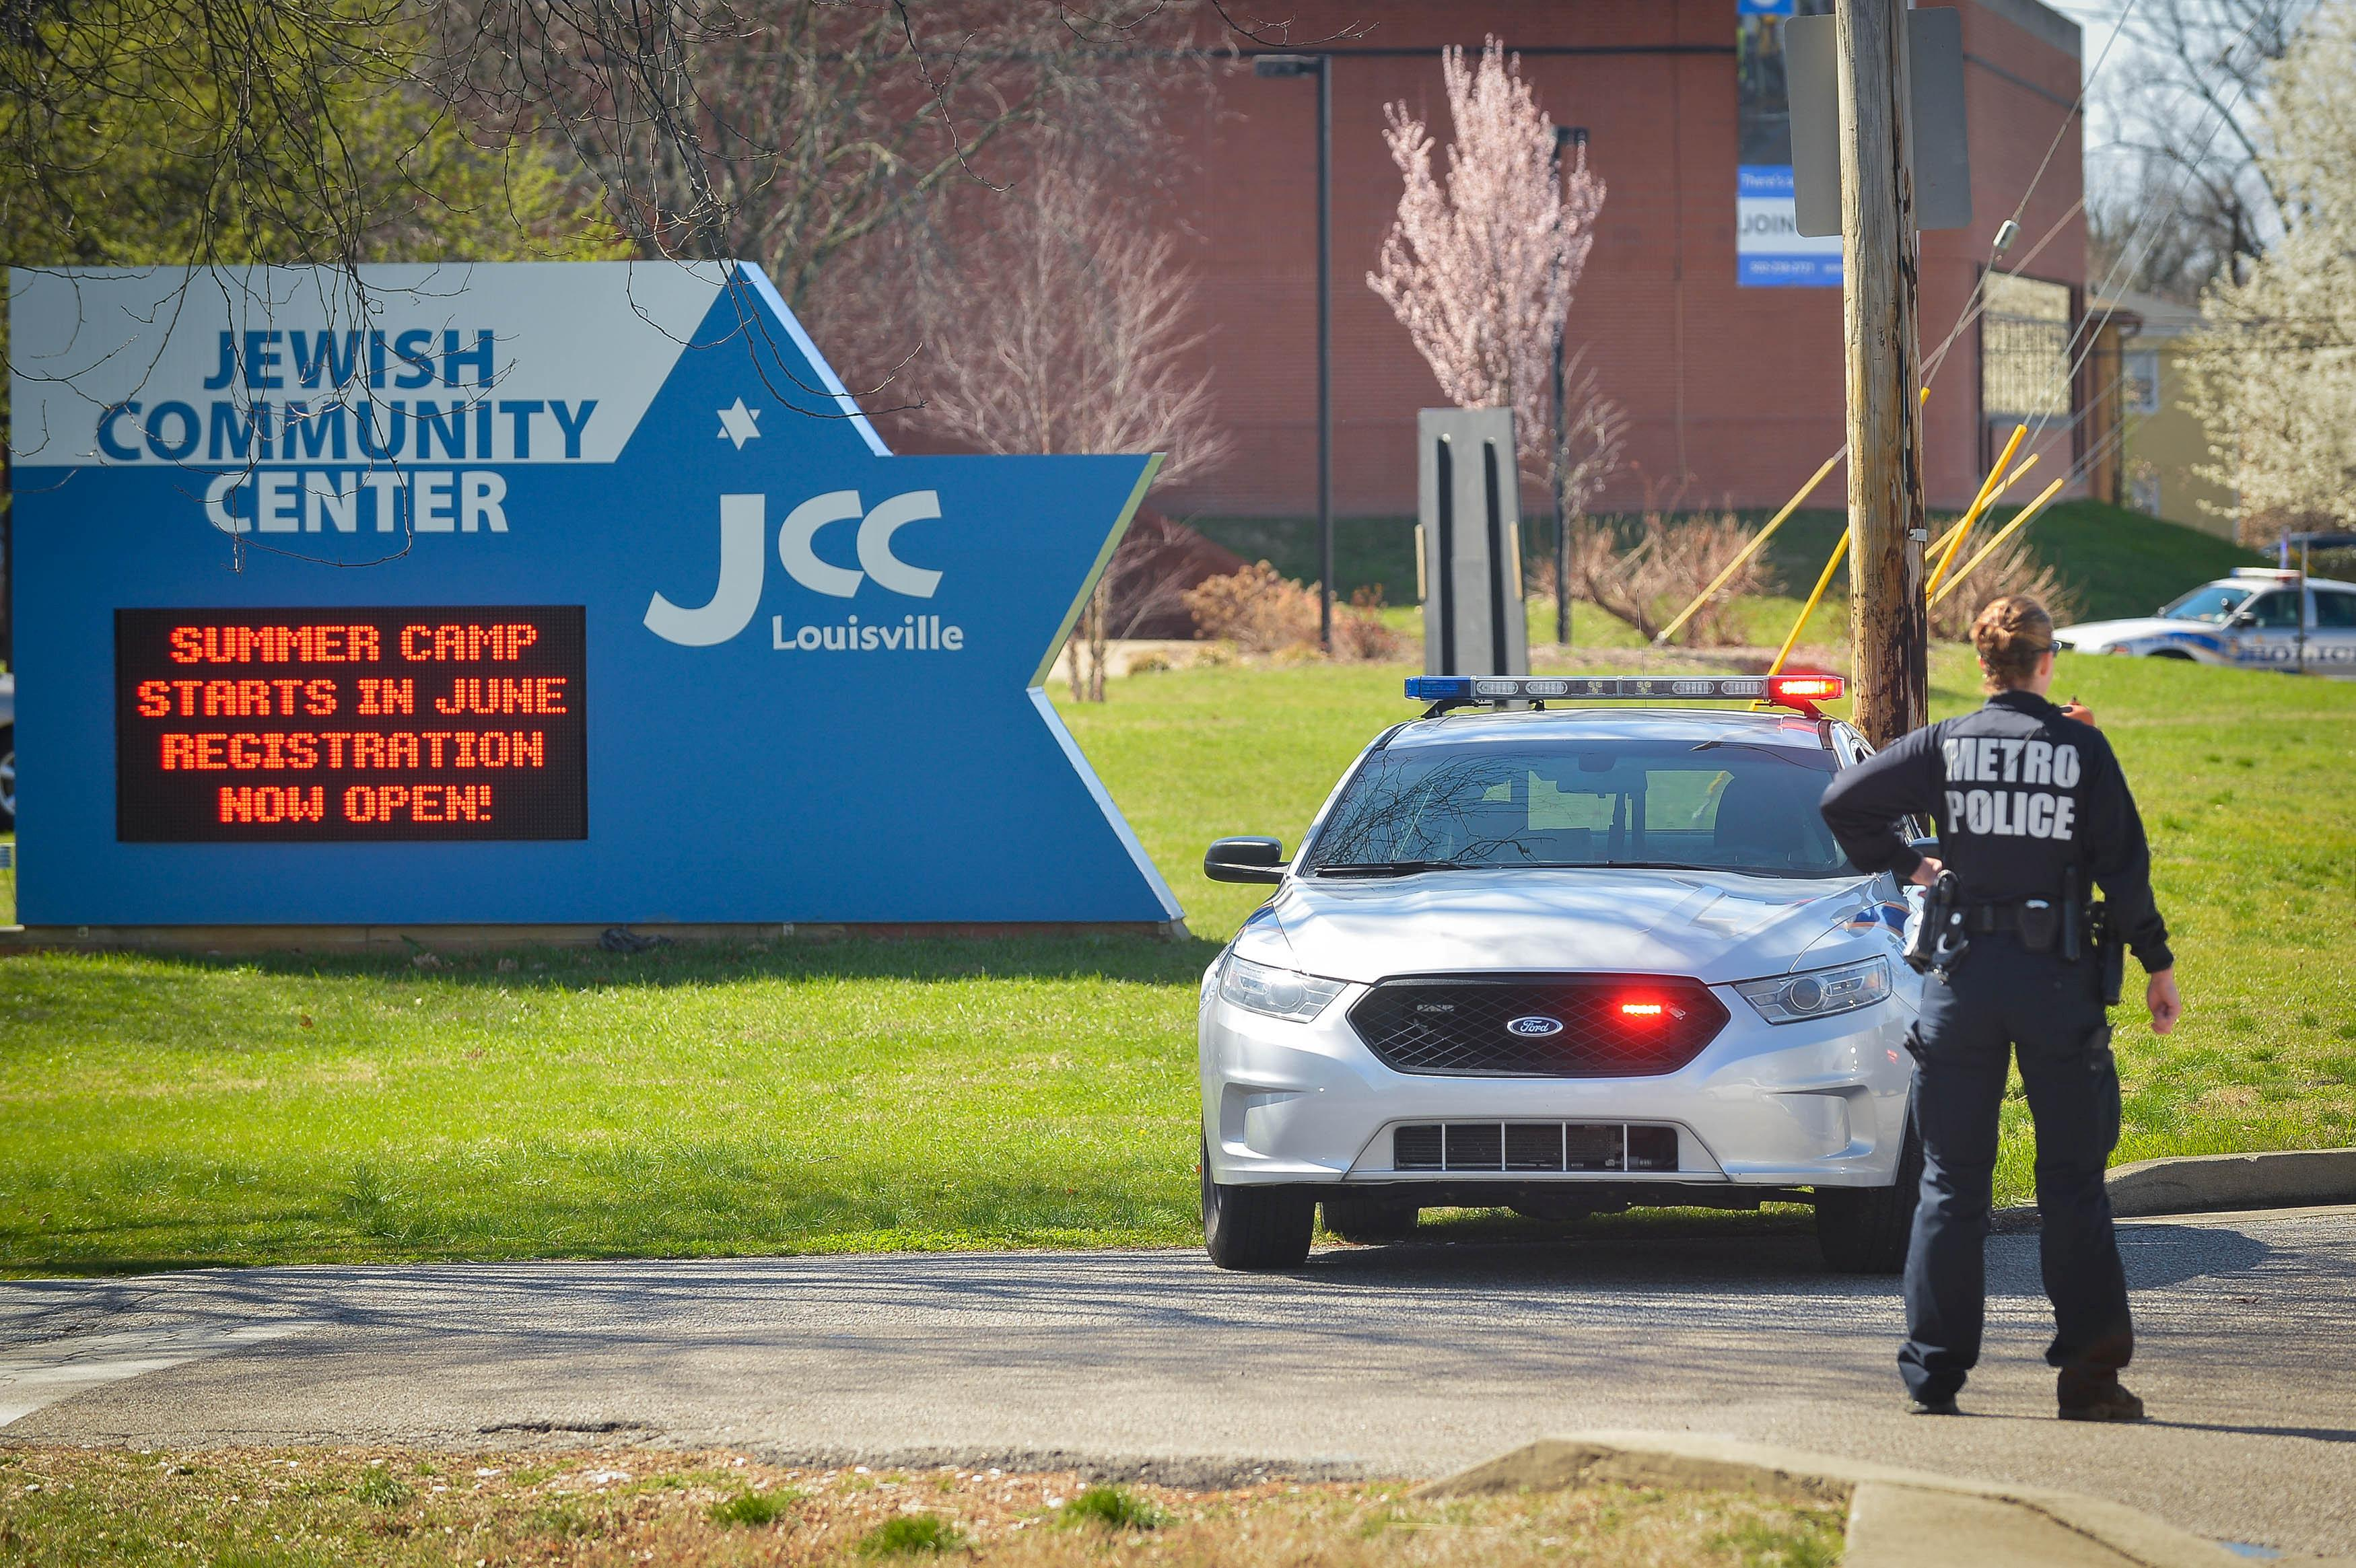 Bomb Threat Texted to Jewish Organization in Third Incident This Week